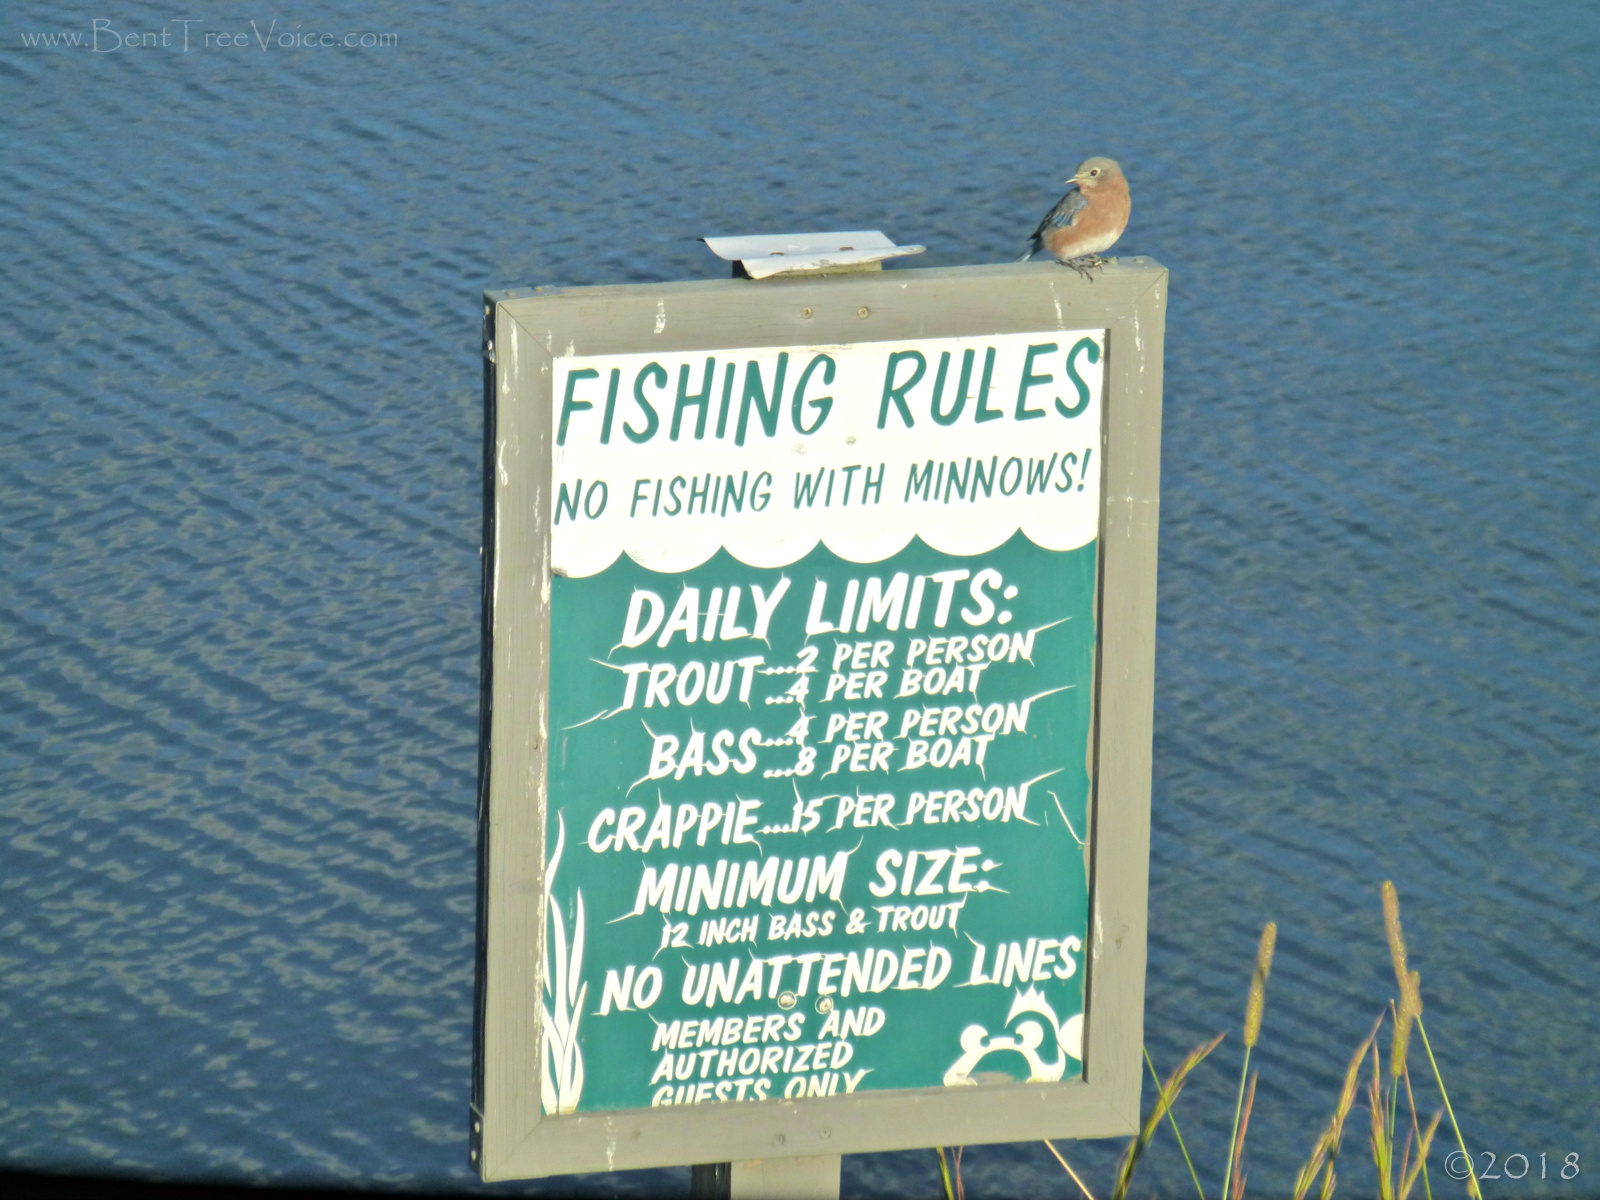 October 11, 2018 - Bluebird on Fishing Rules sign in Bent Tree